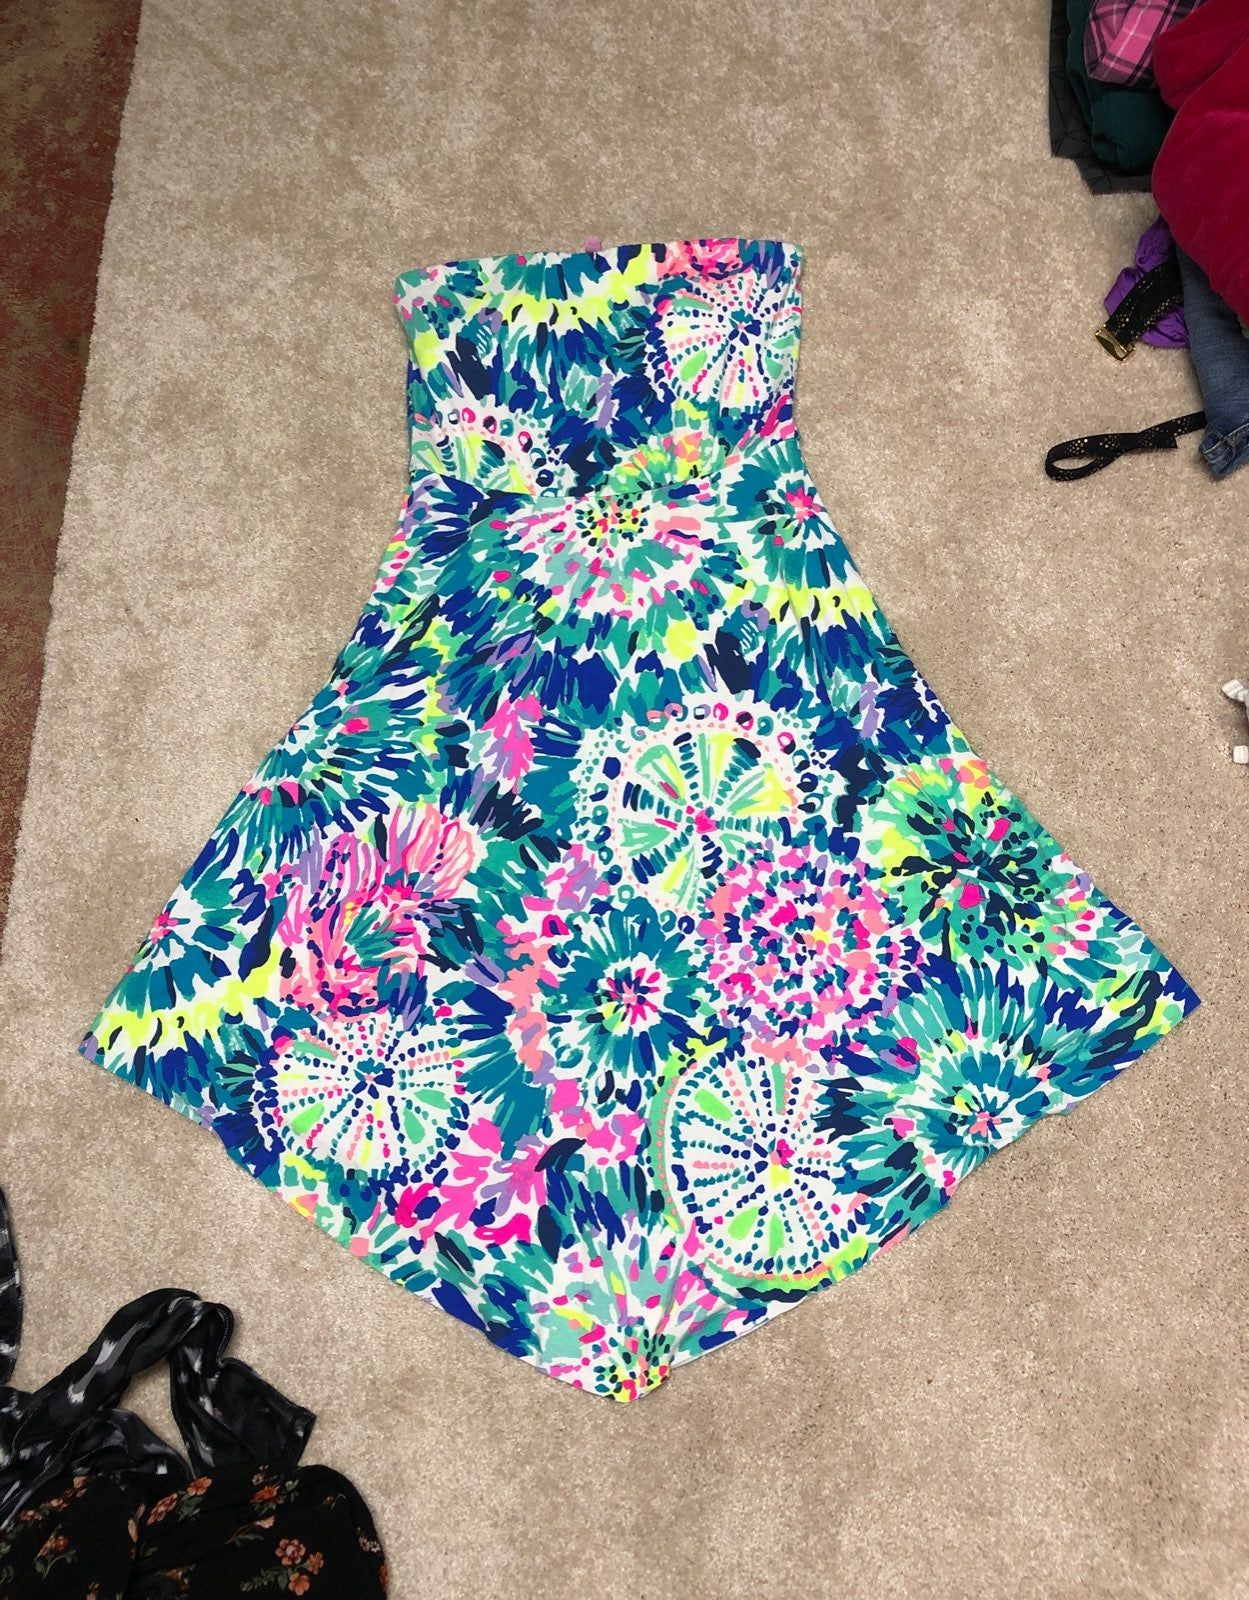 Lilly Pulitzer Dress Small Strapless With Built In Bra With Padding Super Pretty And Cute Good Condition Lilly Pulitzer Dress Lilly Pulitzer Pulitzer Dress [ 1600 x 1249 Pixel ]